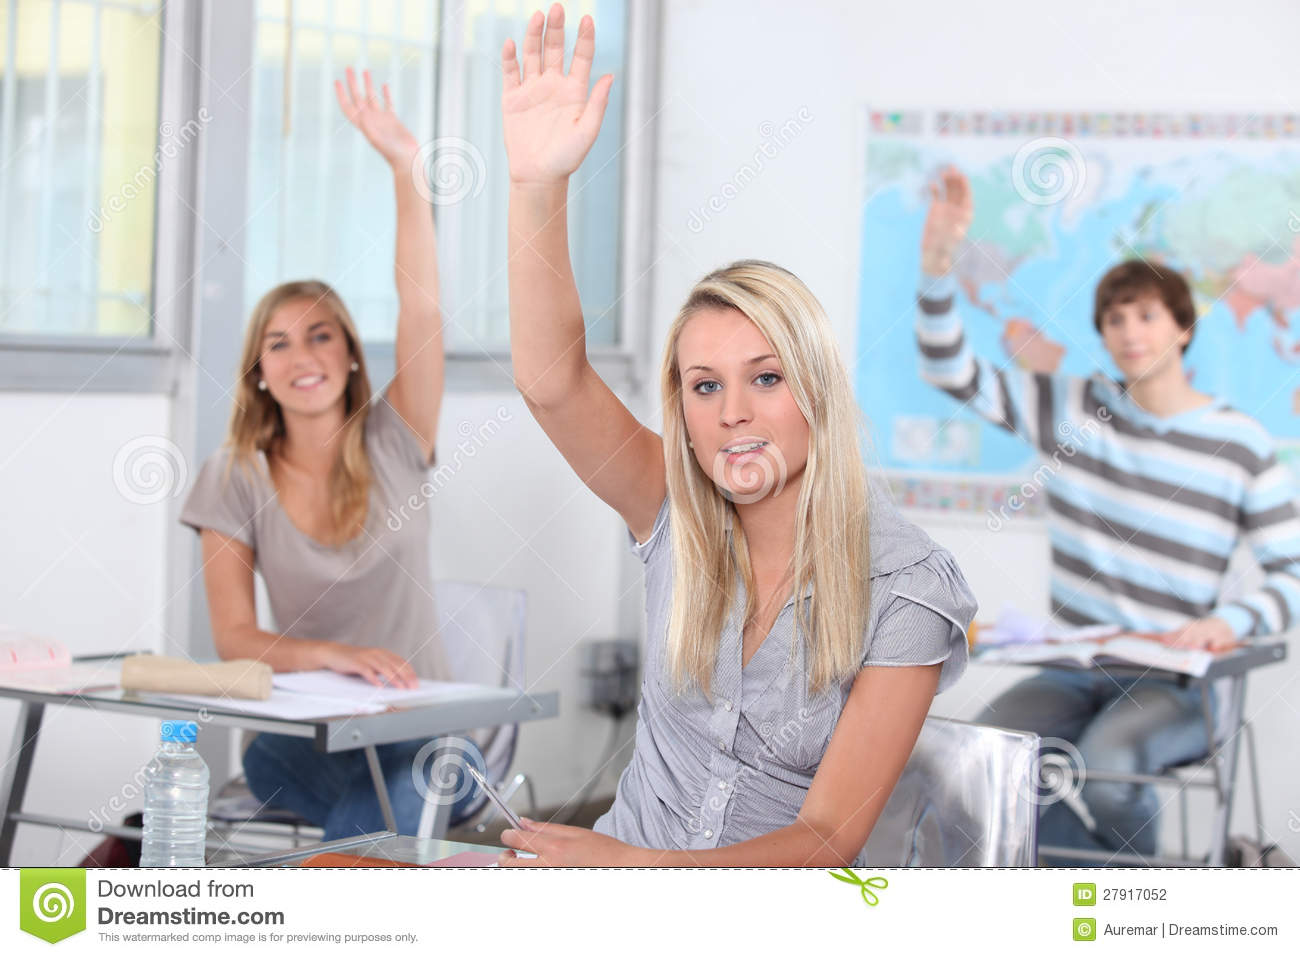 Student Raising Hand Pictures to Pin on Pinterest - PinsDaddy Raising